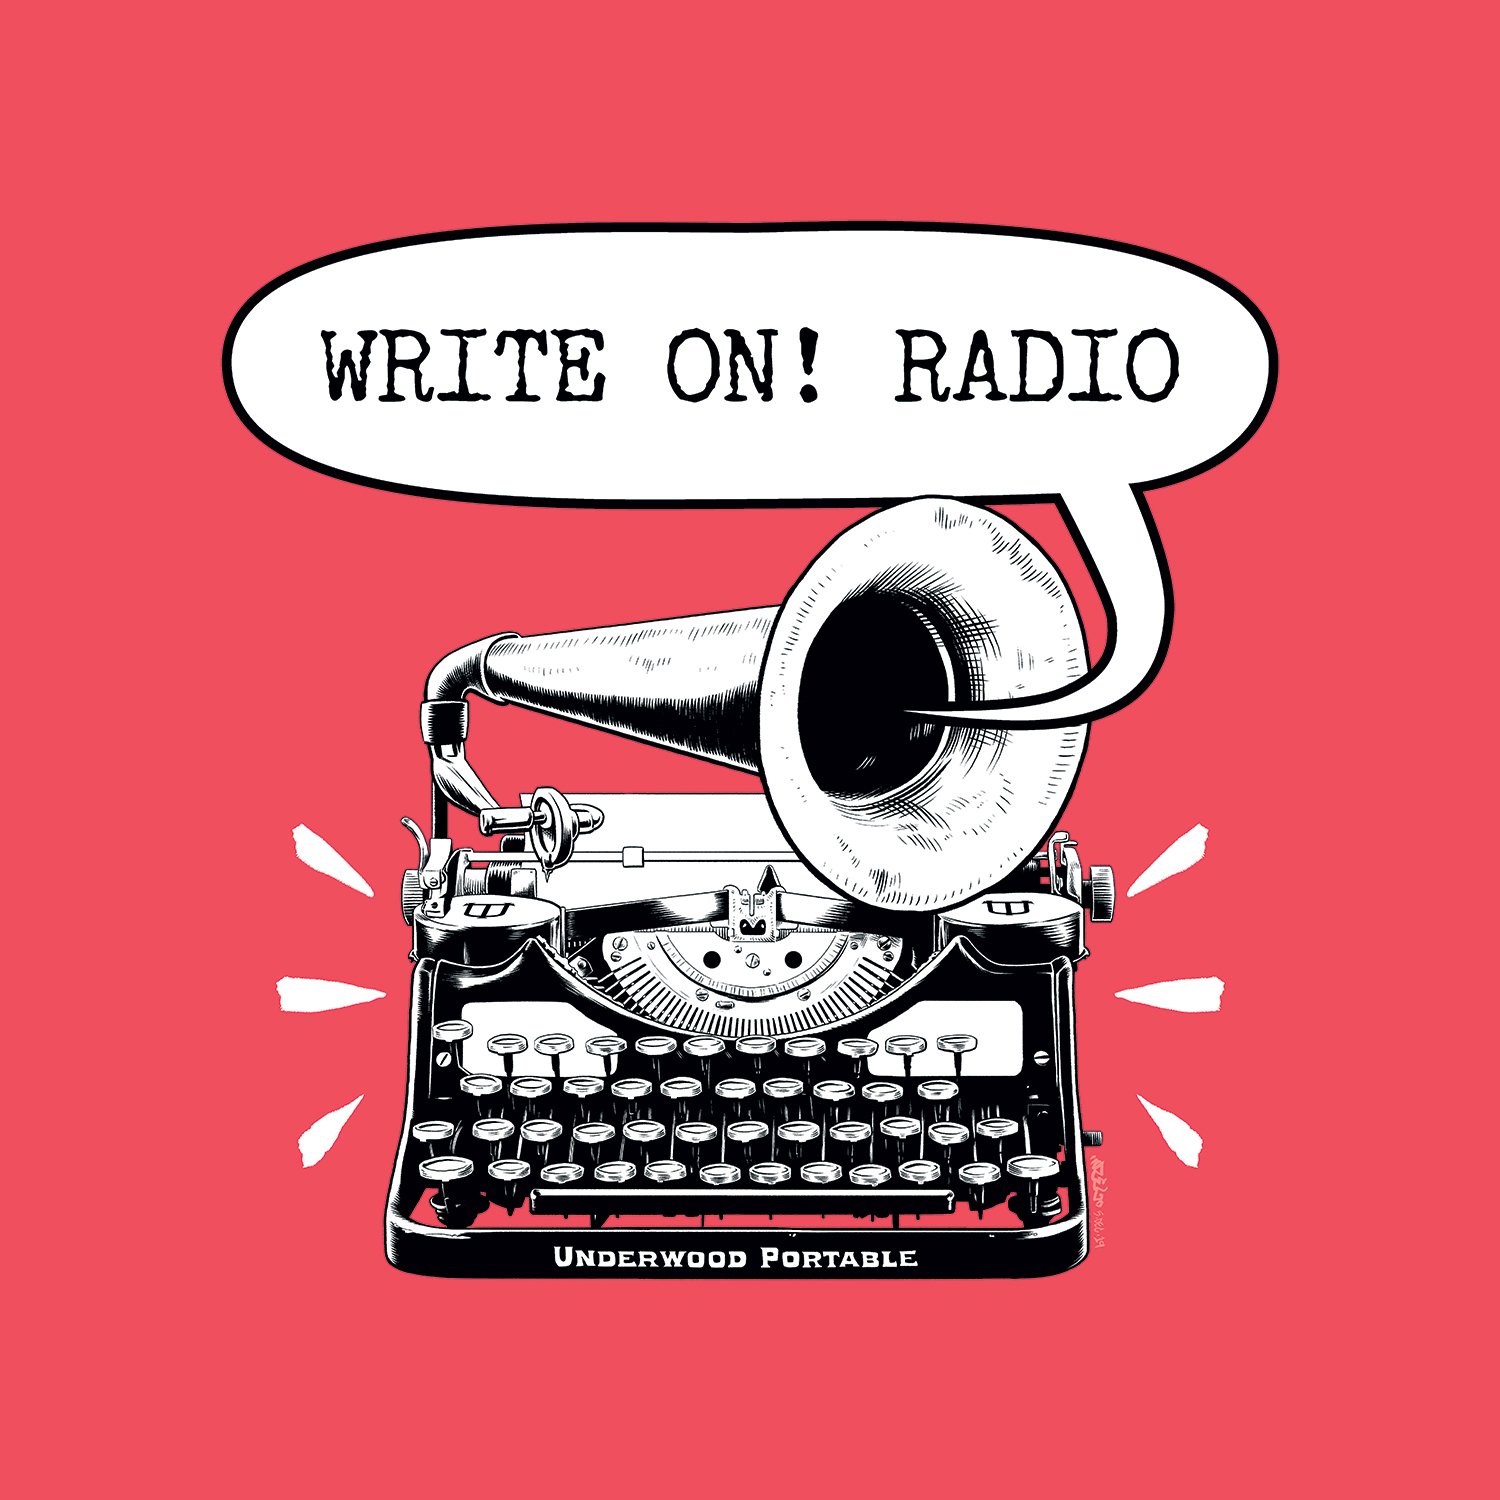 Write On! Radio – Thomas D. Peacock and Juan Manuel Muñoz